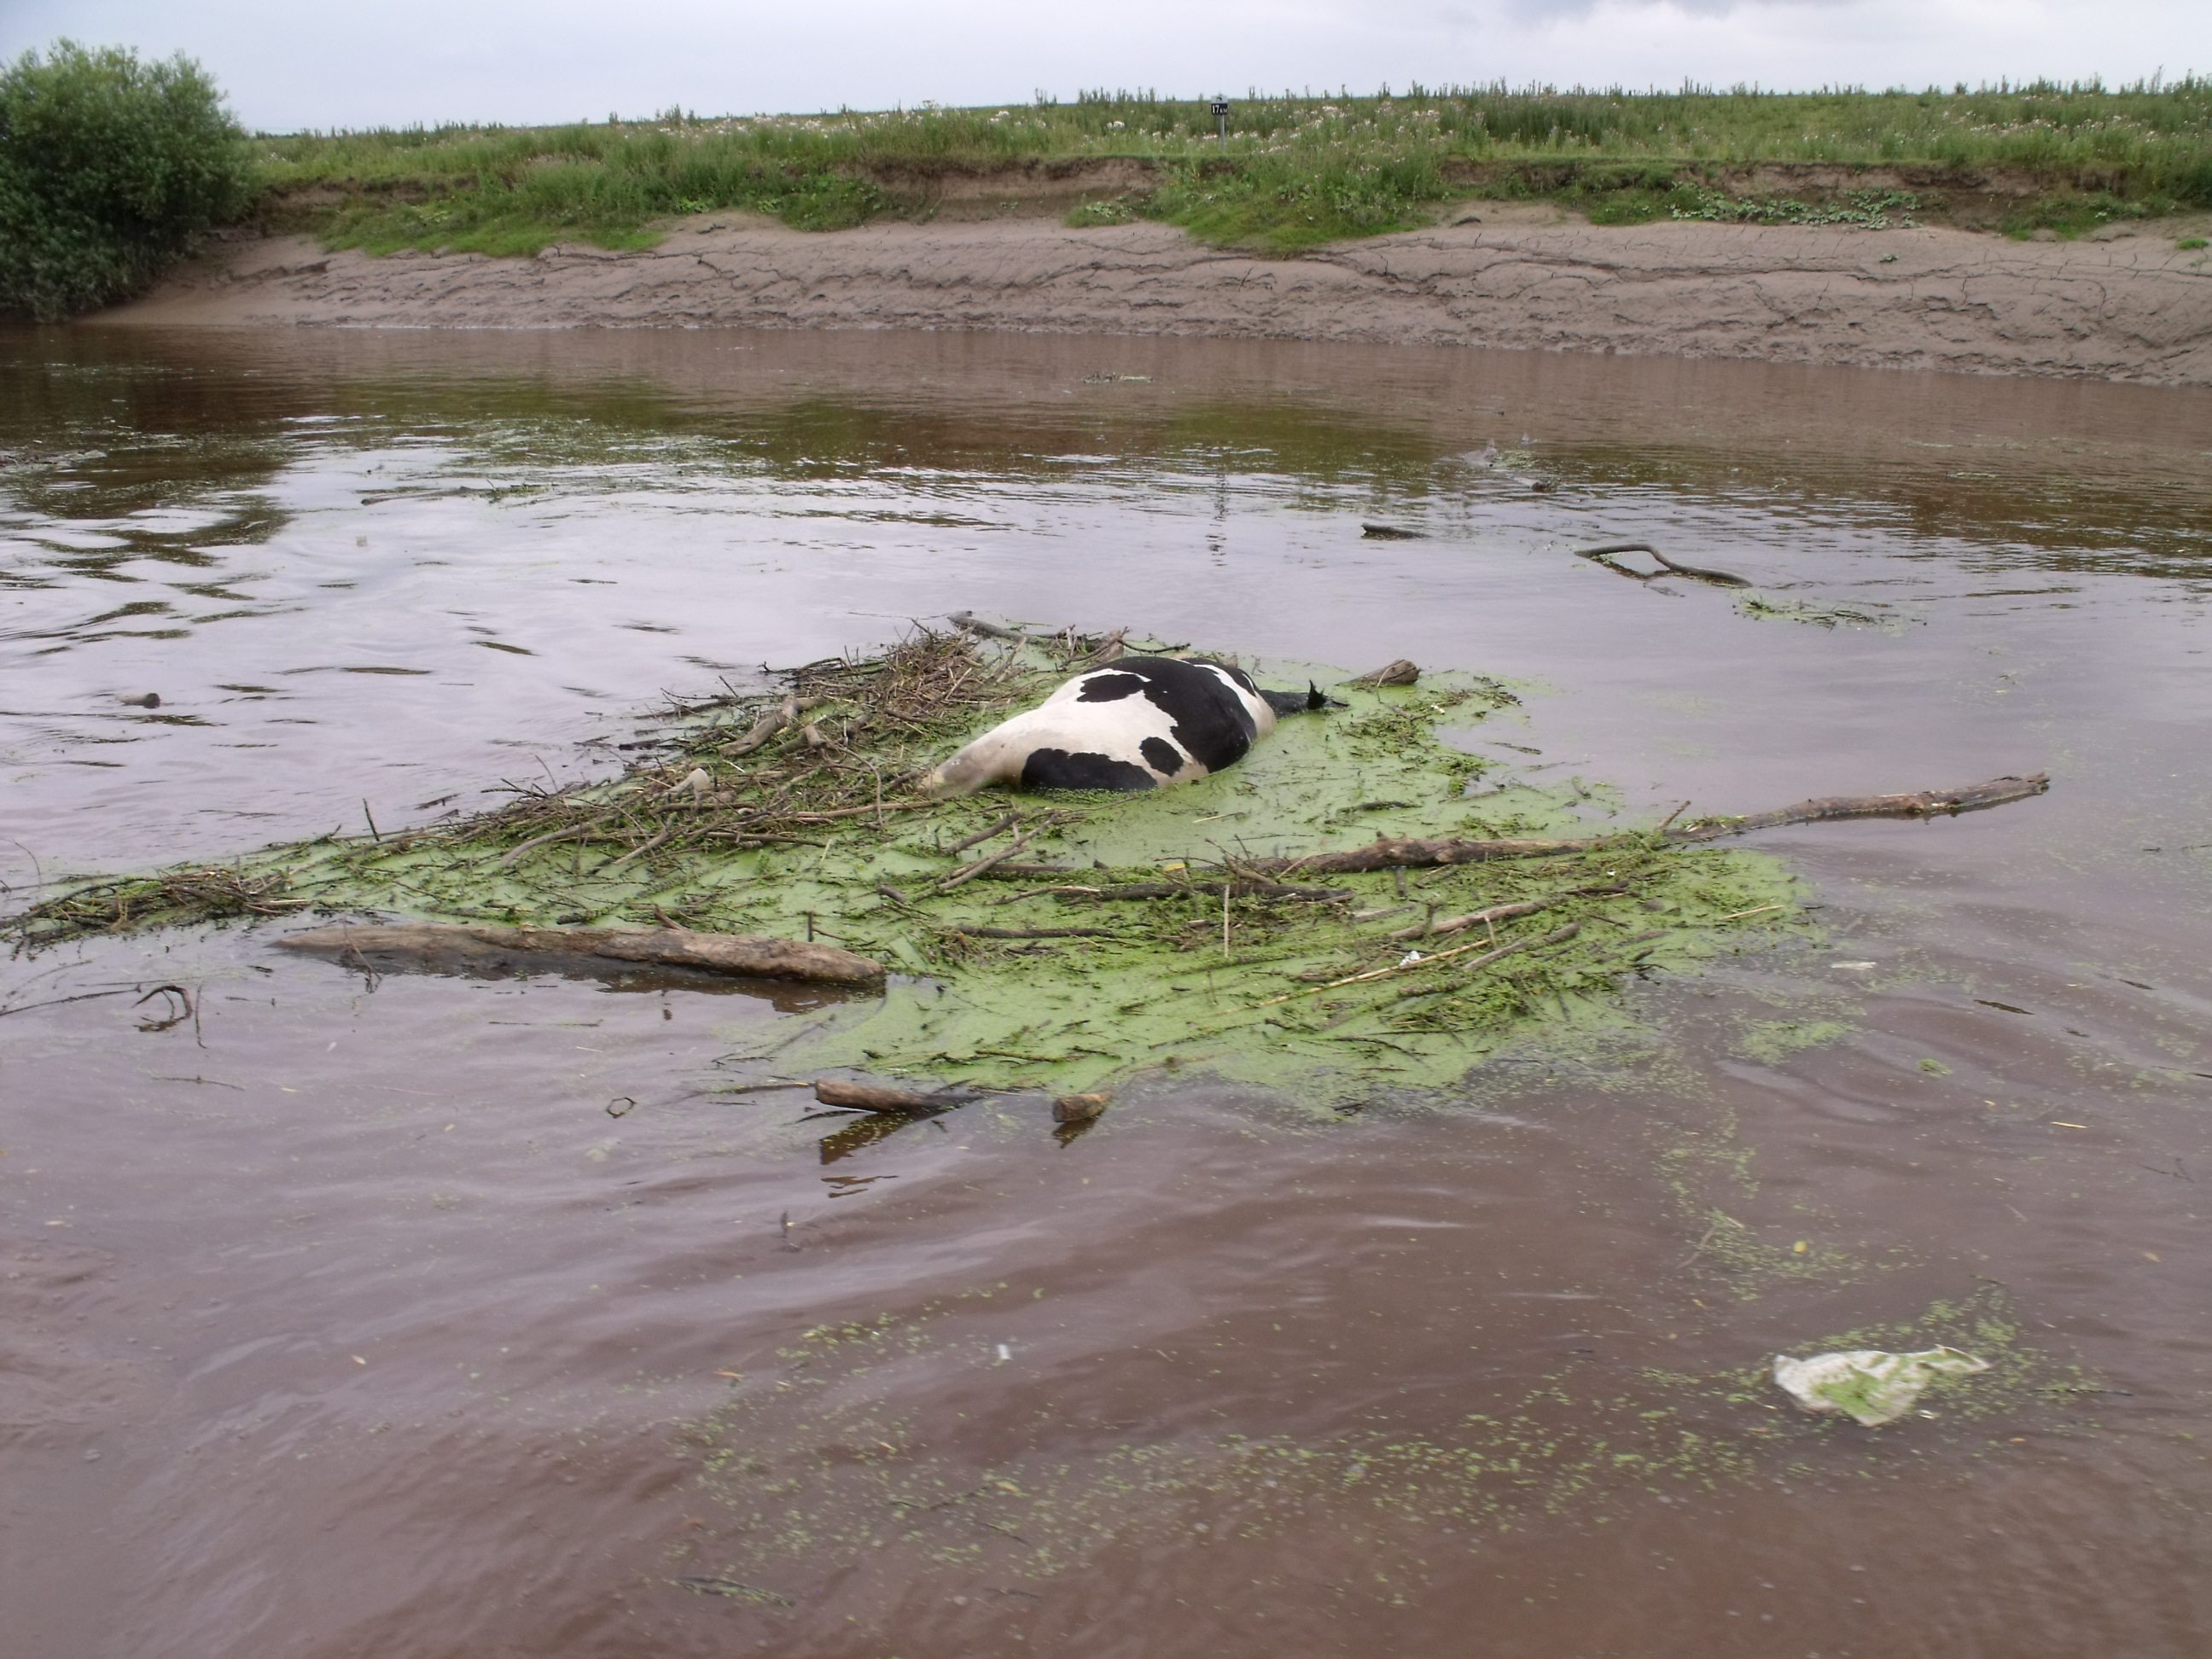 Dead Cow in the River Ouse